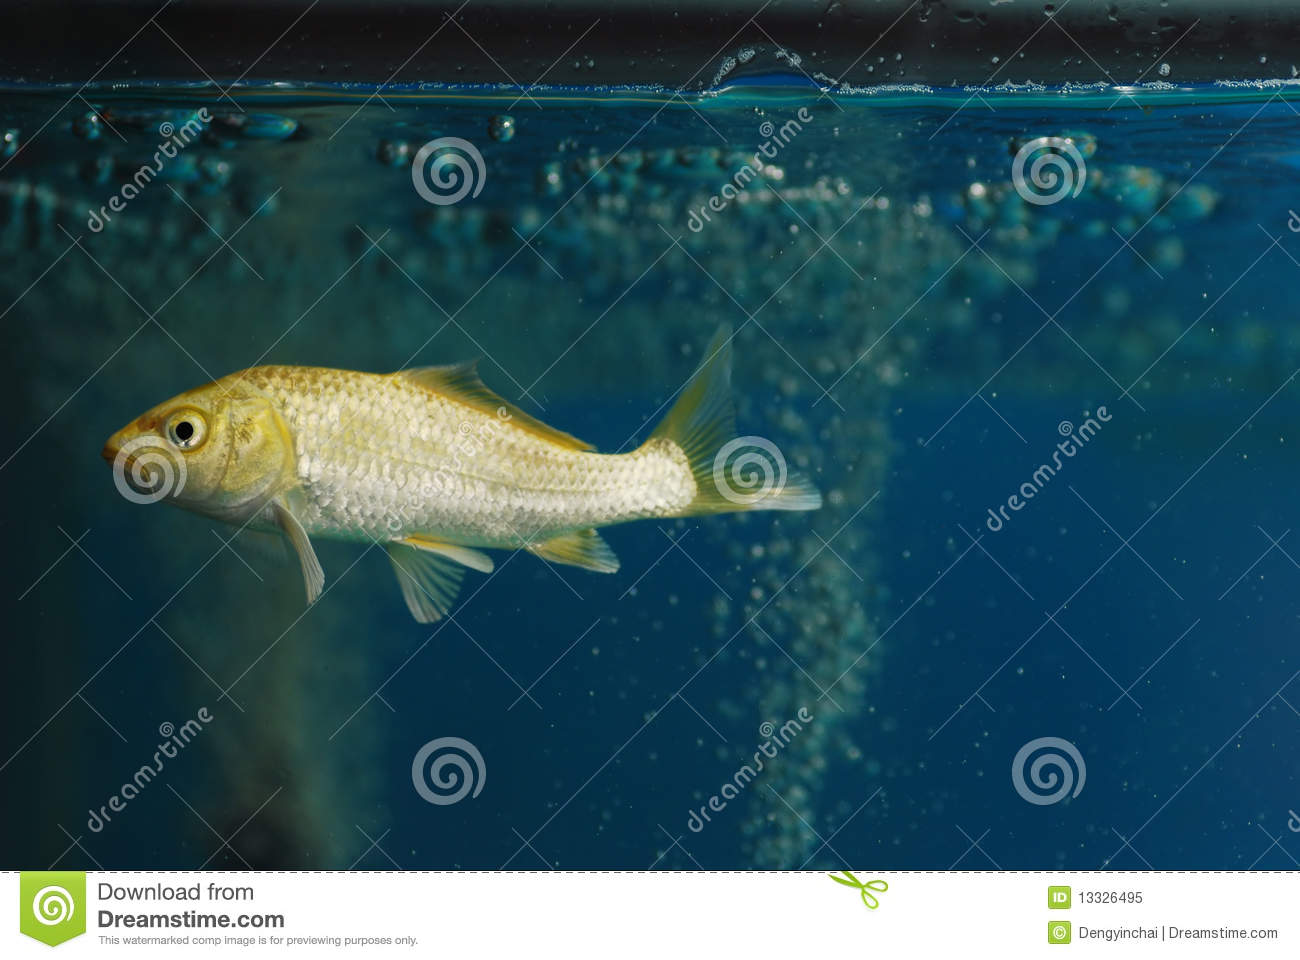 A koi carp fish swim in the glass aquarium stock image for Koi fish aquarium